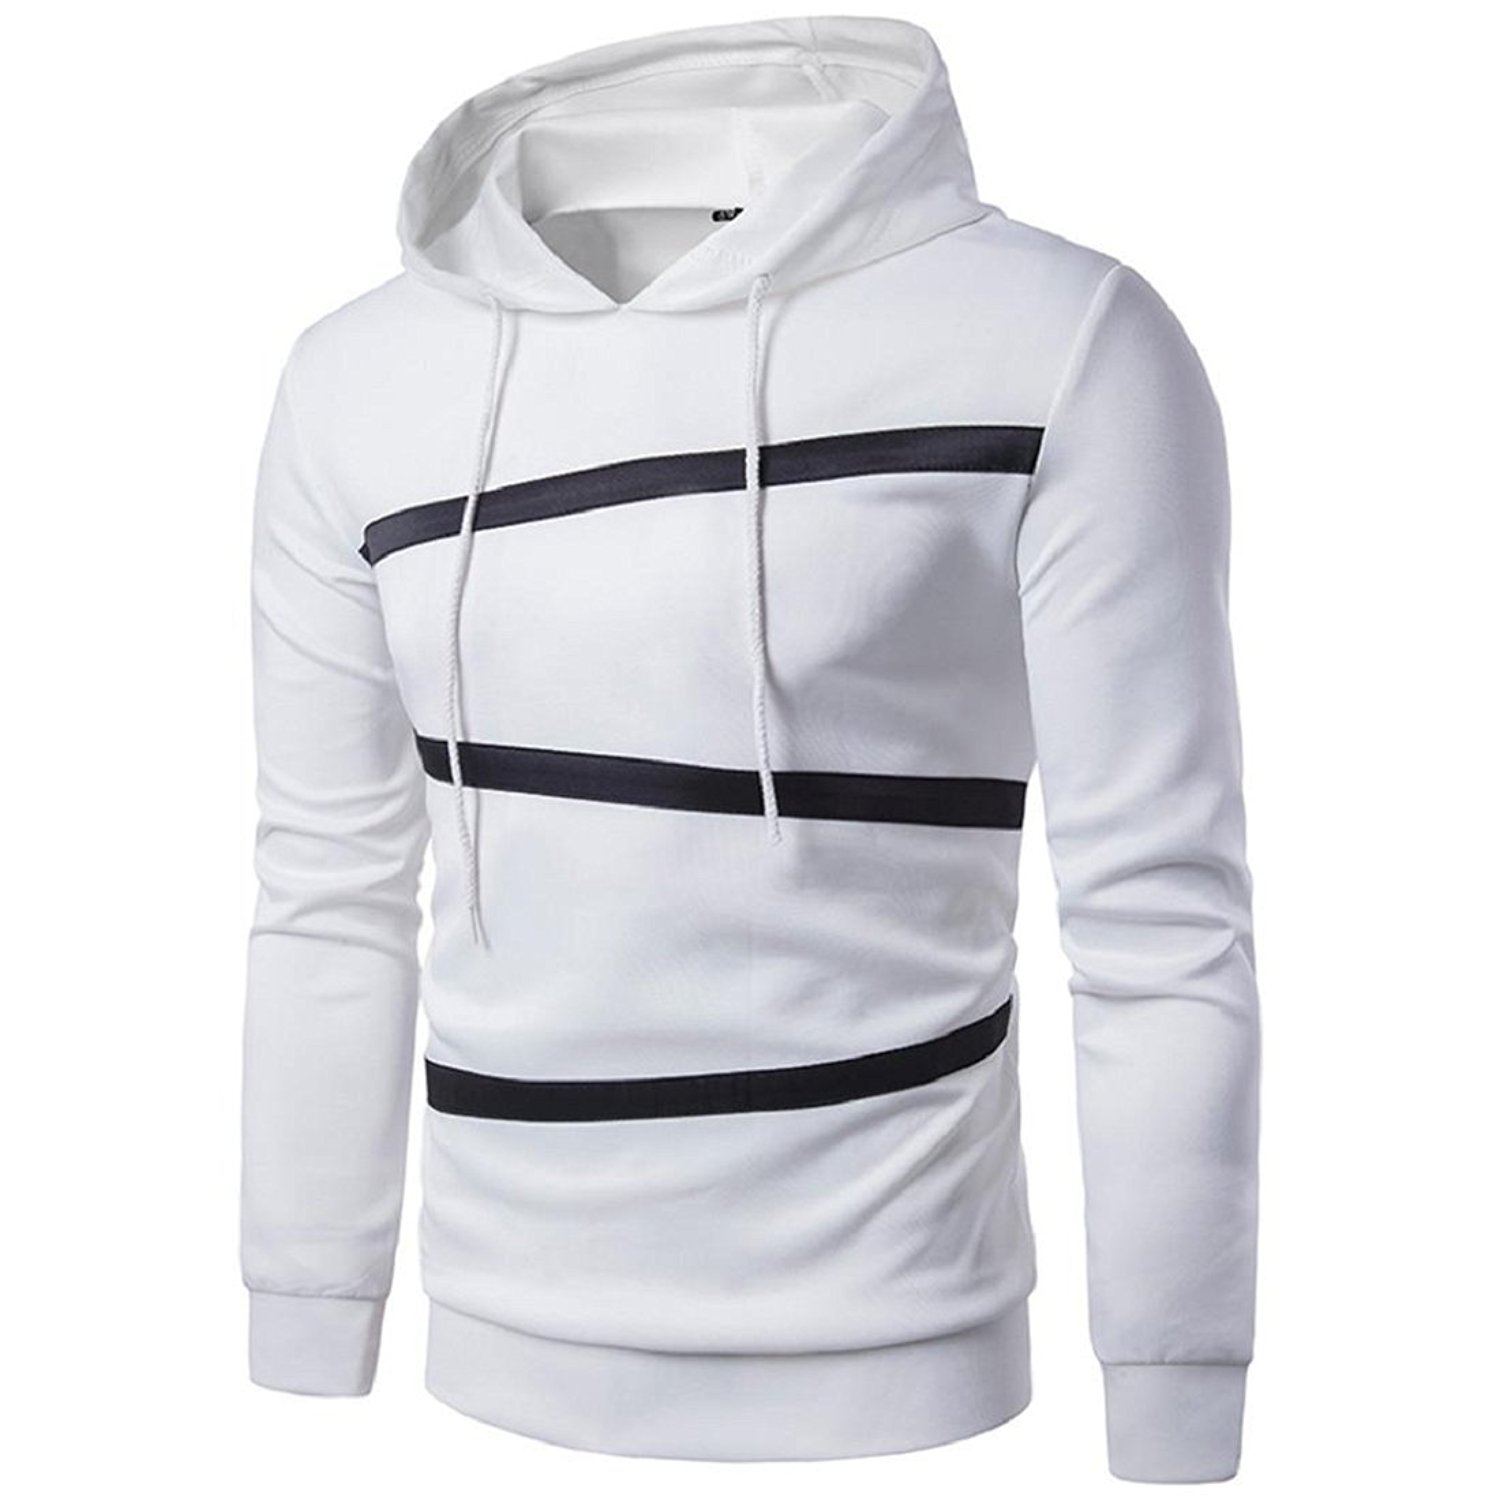 6c46c6e772f05 Get Quotations · GONKOMA Men's Long Sleeve Hoodie Autumn Winter Jacket Coat  Outwear Mens' Fashion Solid Color Hoodie